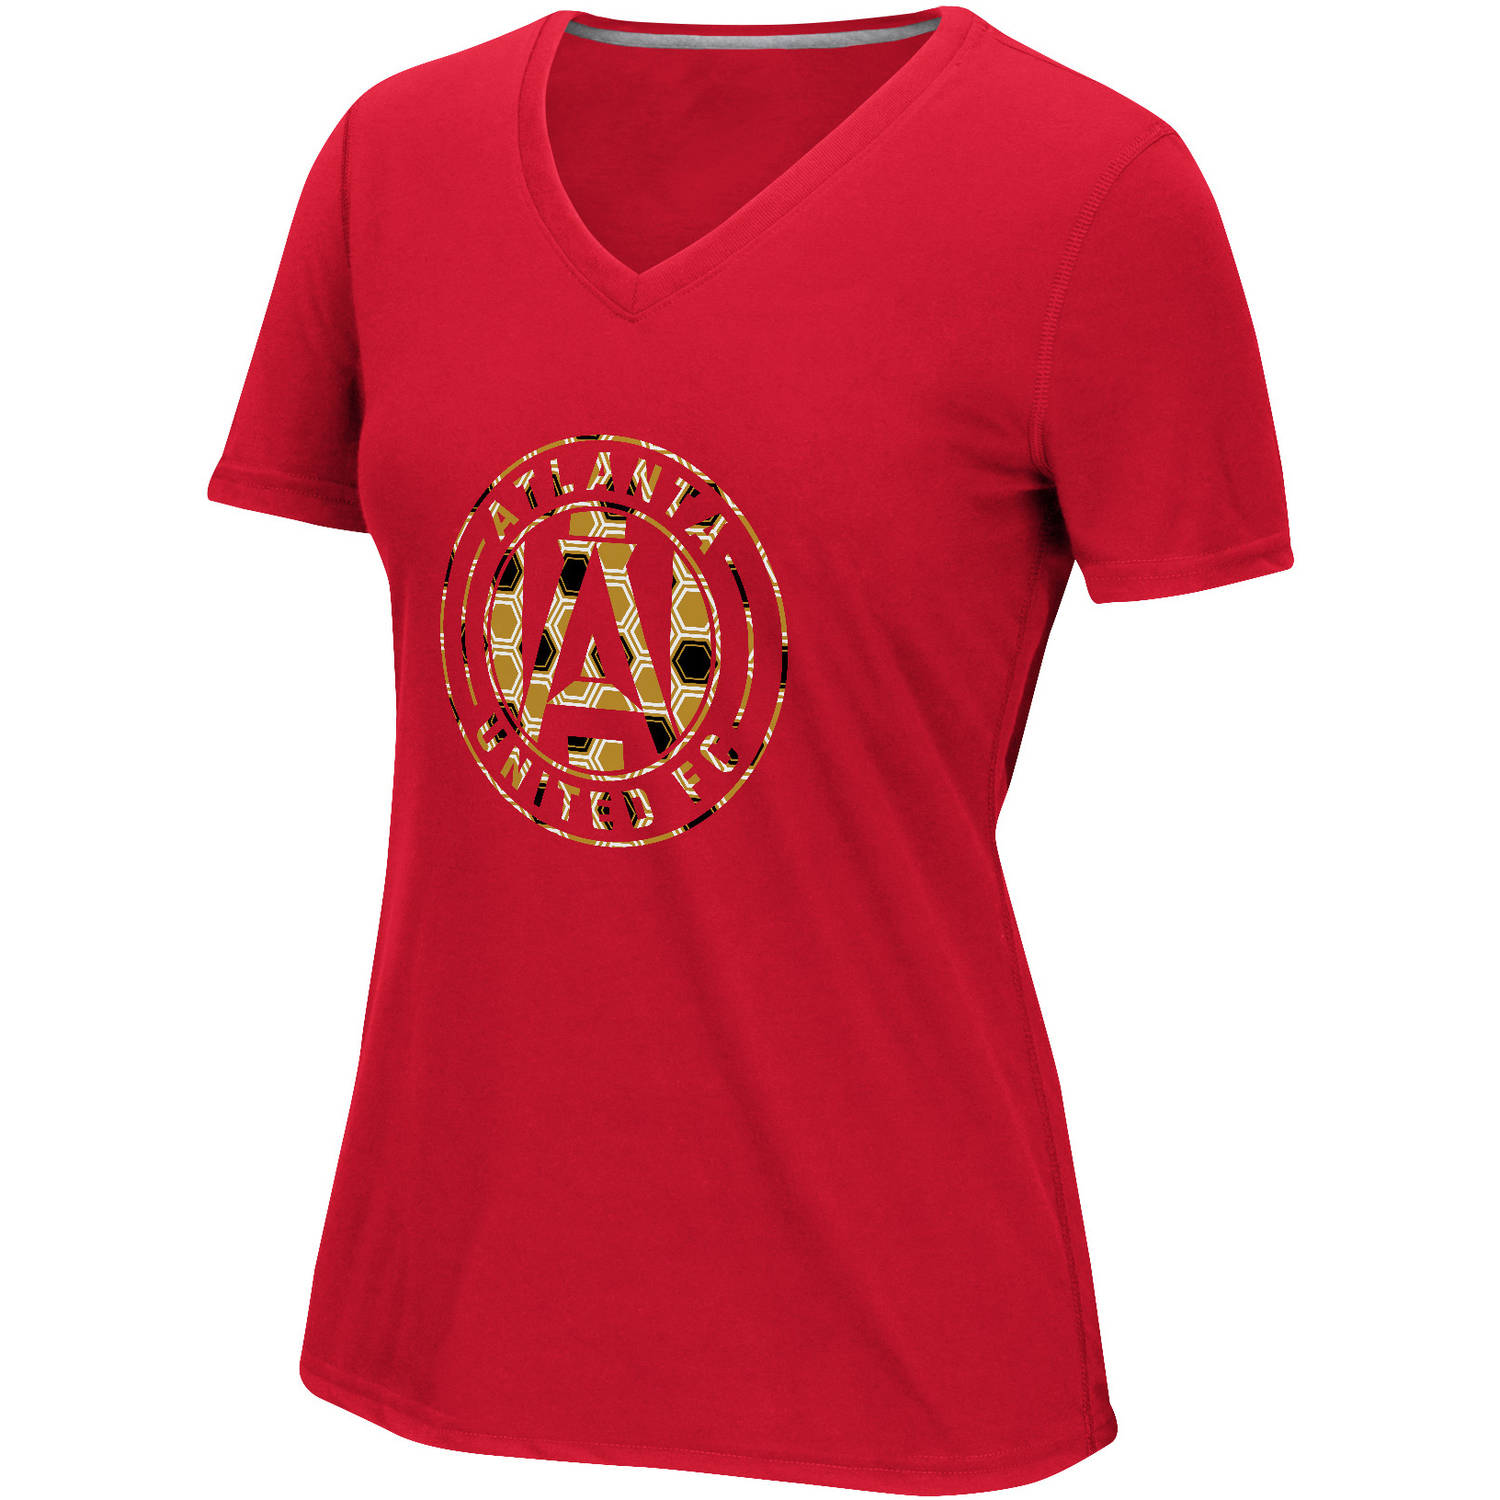 MLS-Atlanta United-Women's Raised Net Tee